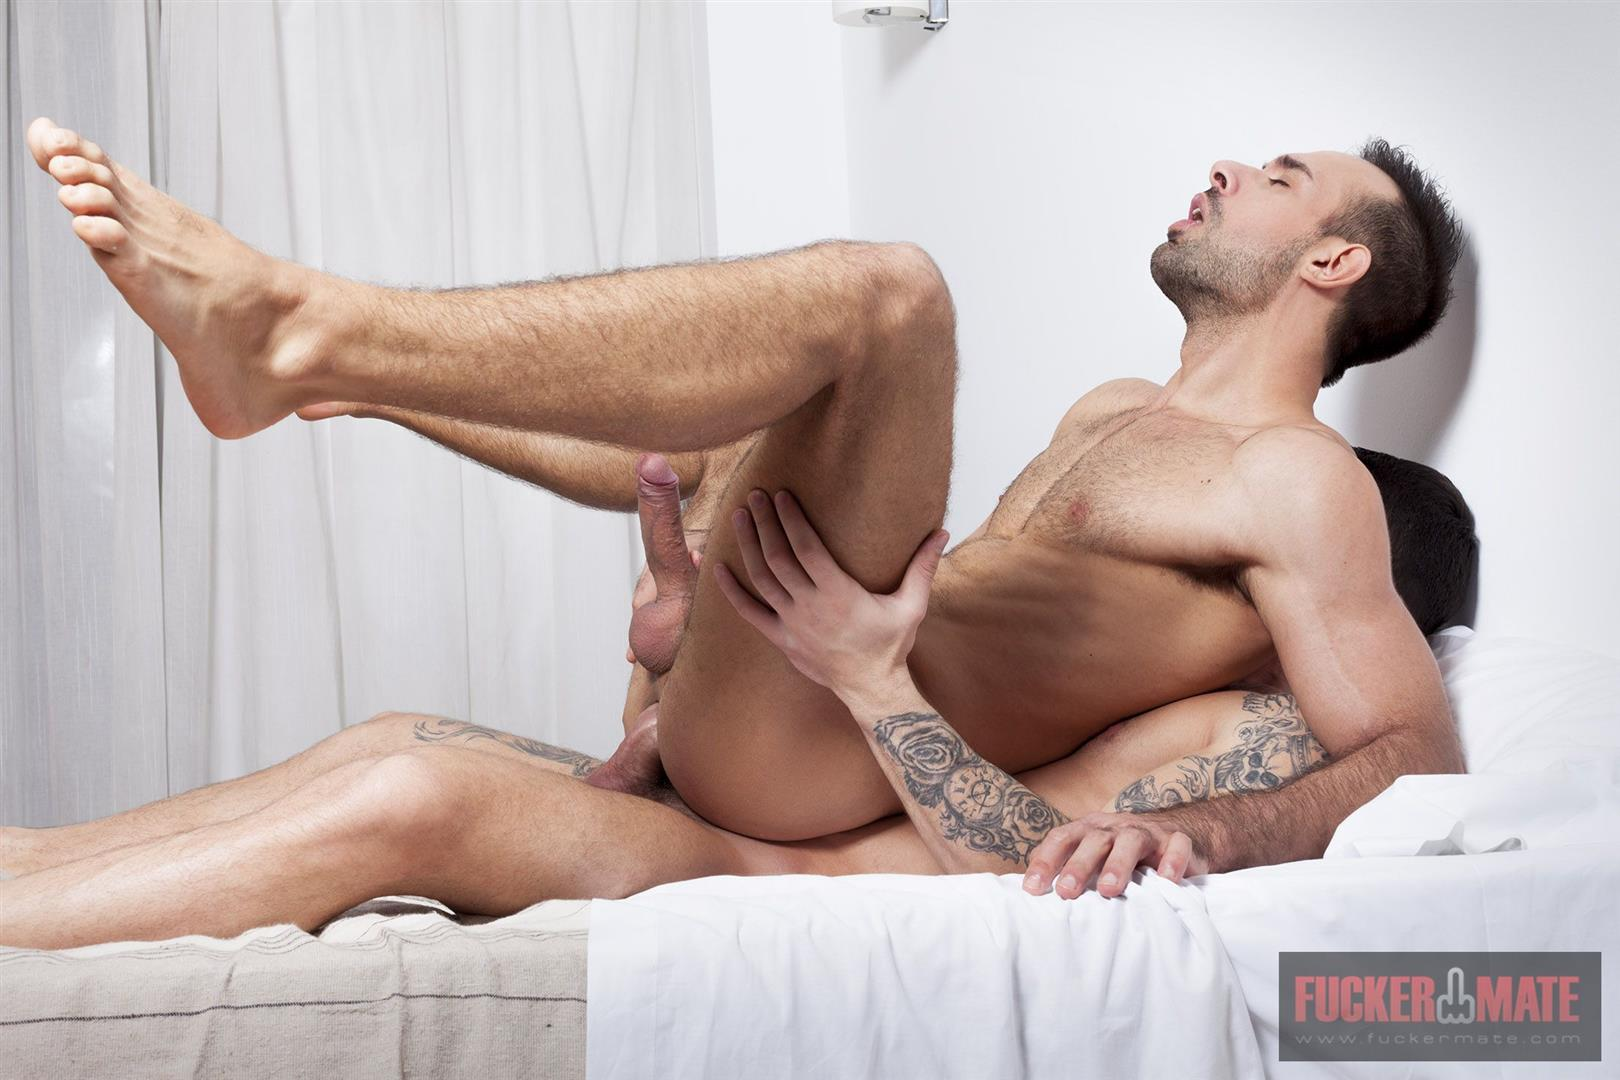 Fuckermate-Alejandro-Torres-and-Jonathan-Forrest-Big-Uncut-Cock-Bareback-Sex-09 Big Uncut Cock Italian Hunk Gets Fucked In The Ass Bareback